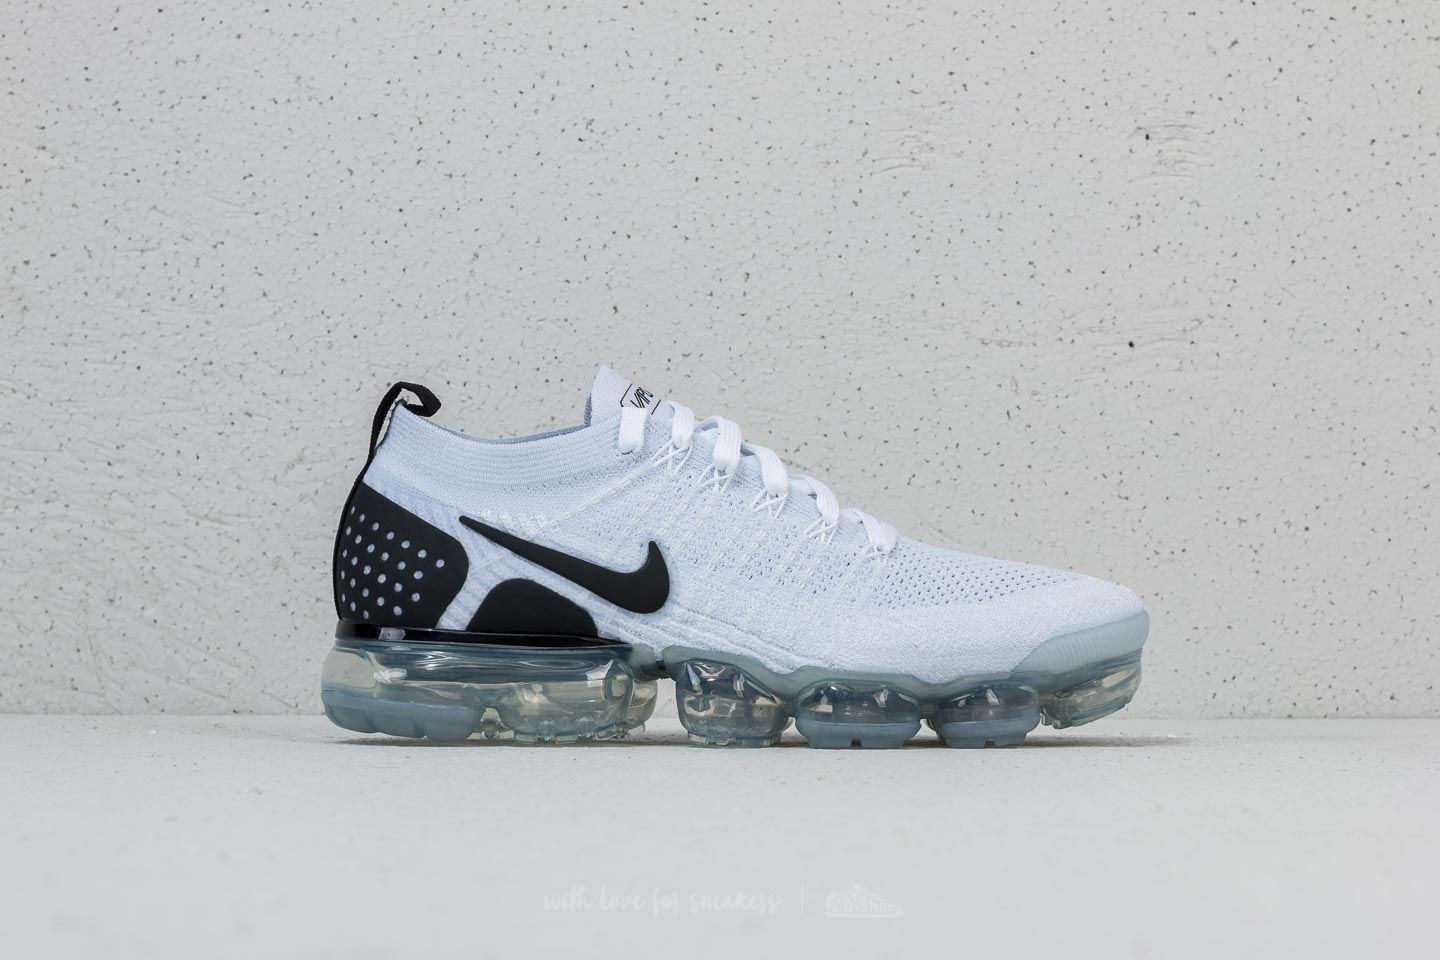 online store f3107 0a85c Nike Air Vapormax Flyknit 2 White/ Black-Black | Footshop